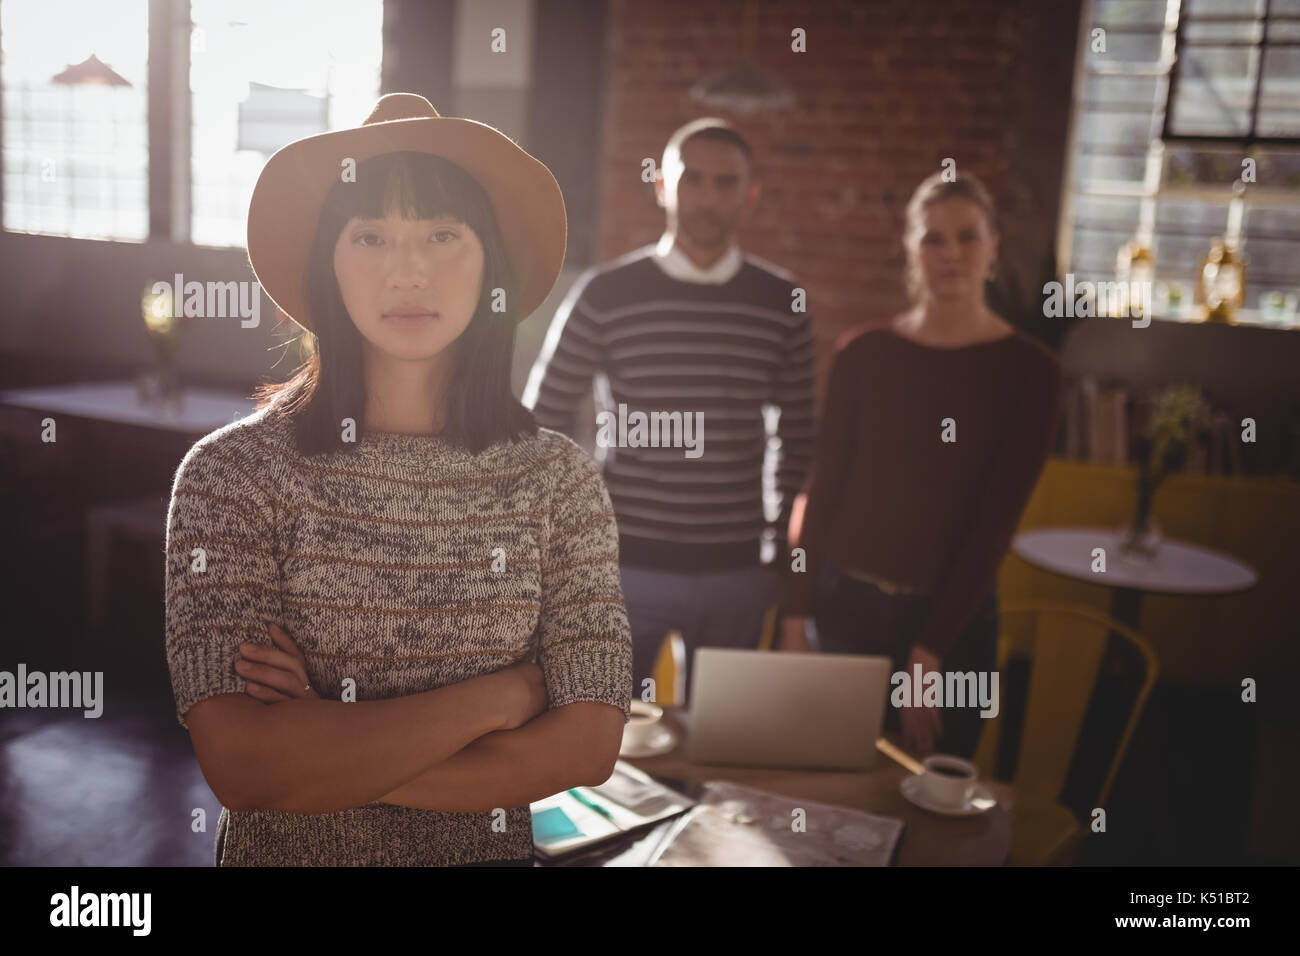 Portrait of woman wearing hat standing with arms crossed contre des collègues du coffee shop Photo Stock